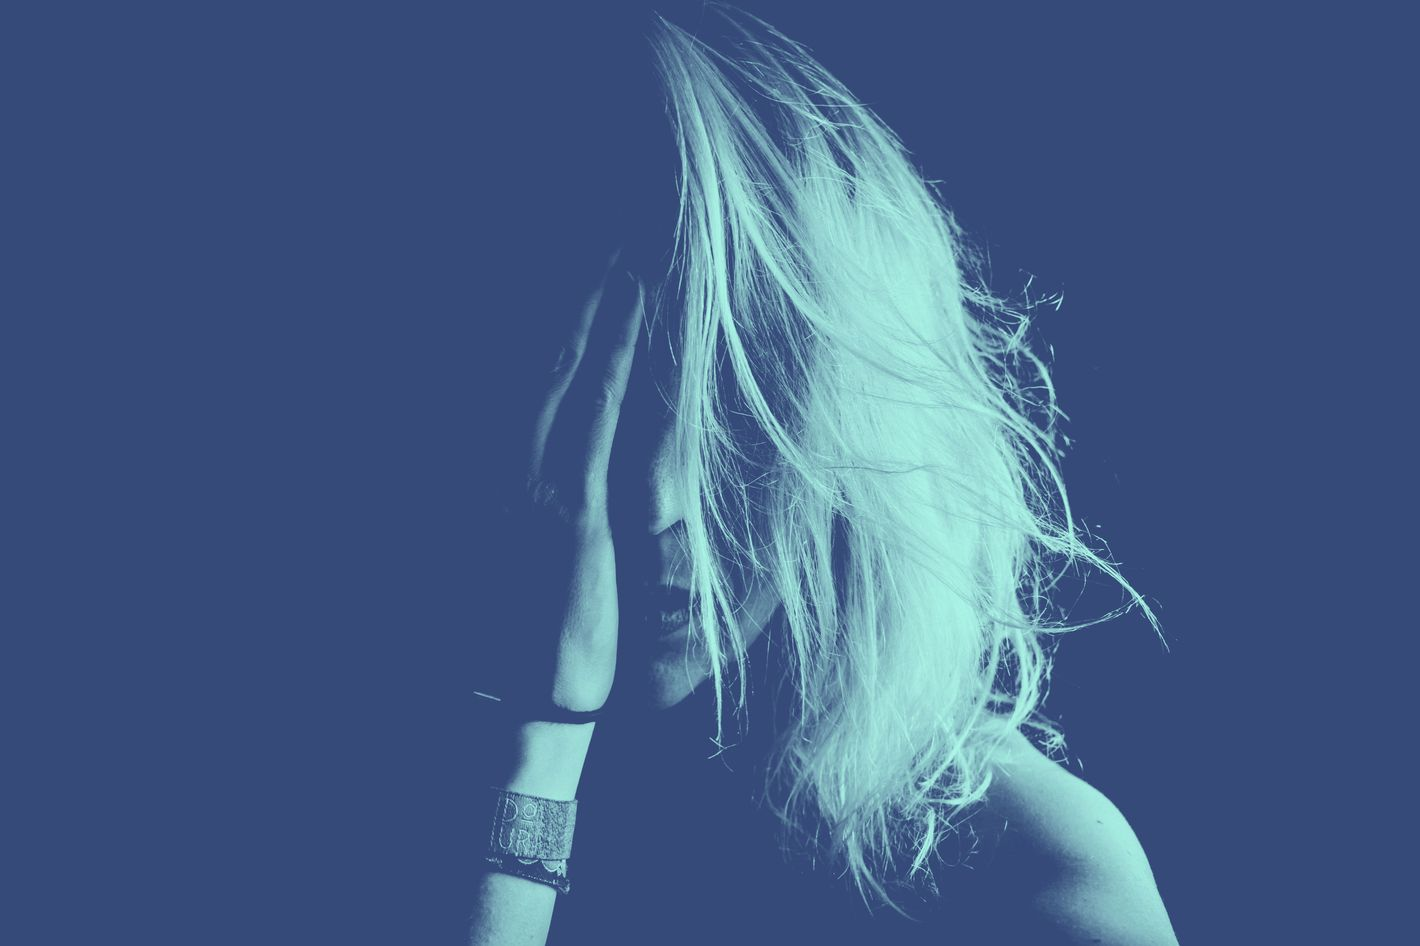 My Life With Borderline Personality Disorder